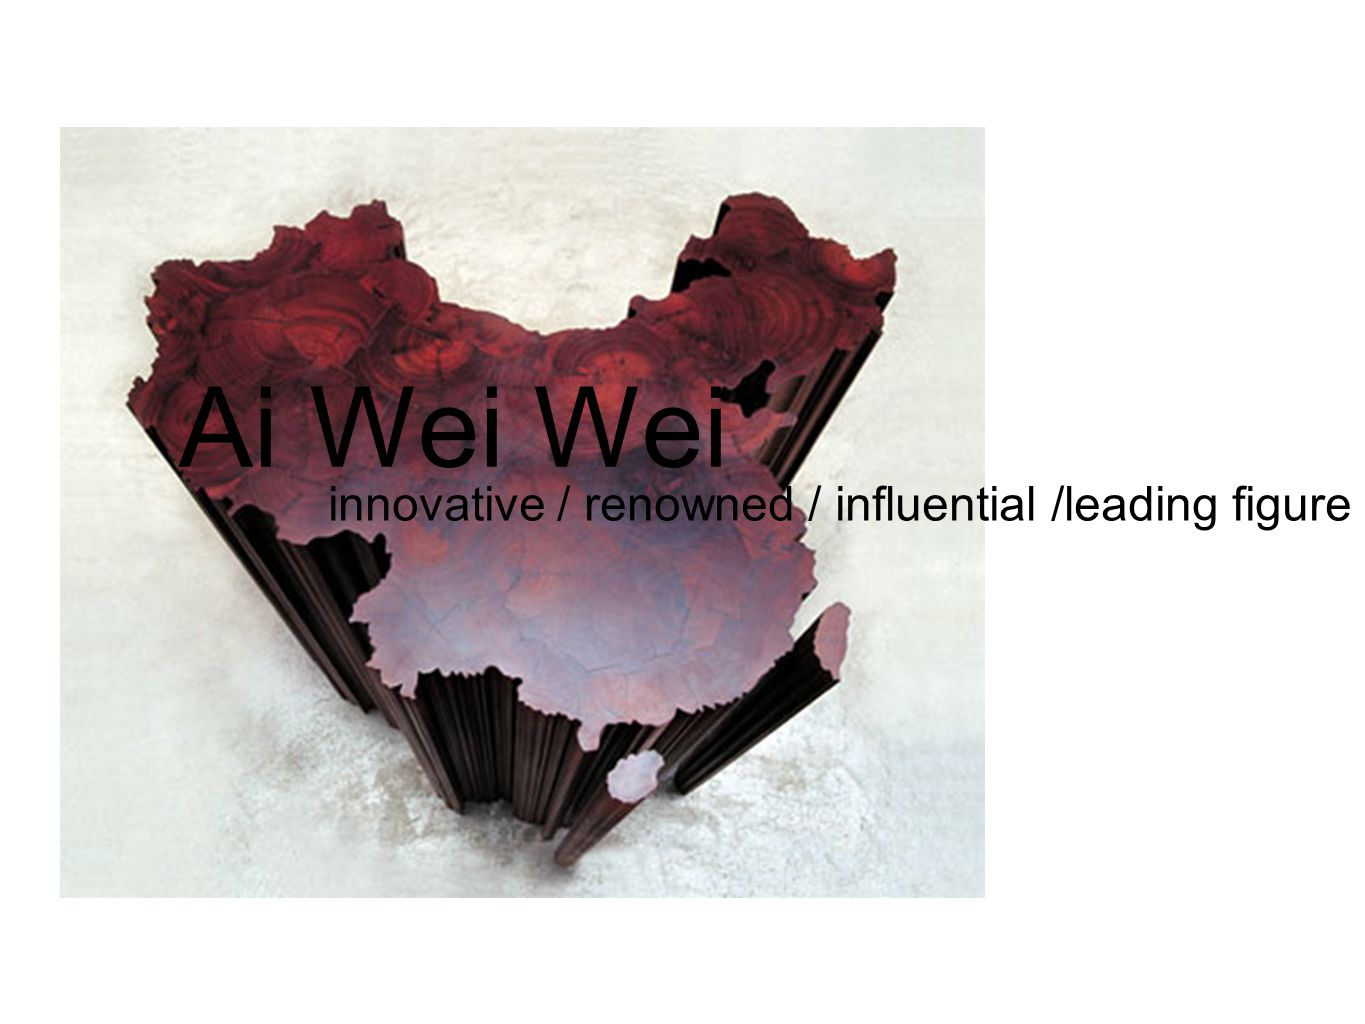 Ai Wei Wei innovative / renowned / influential /leading figure